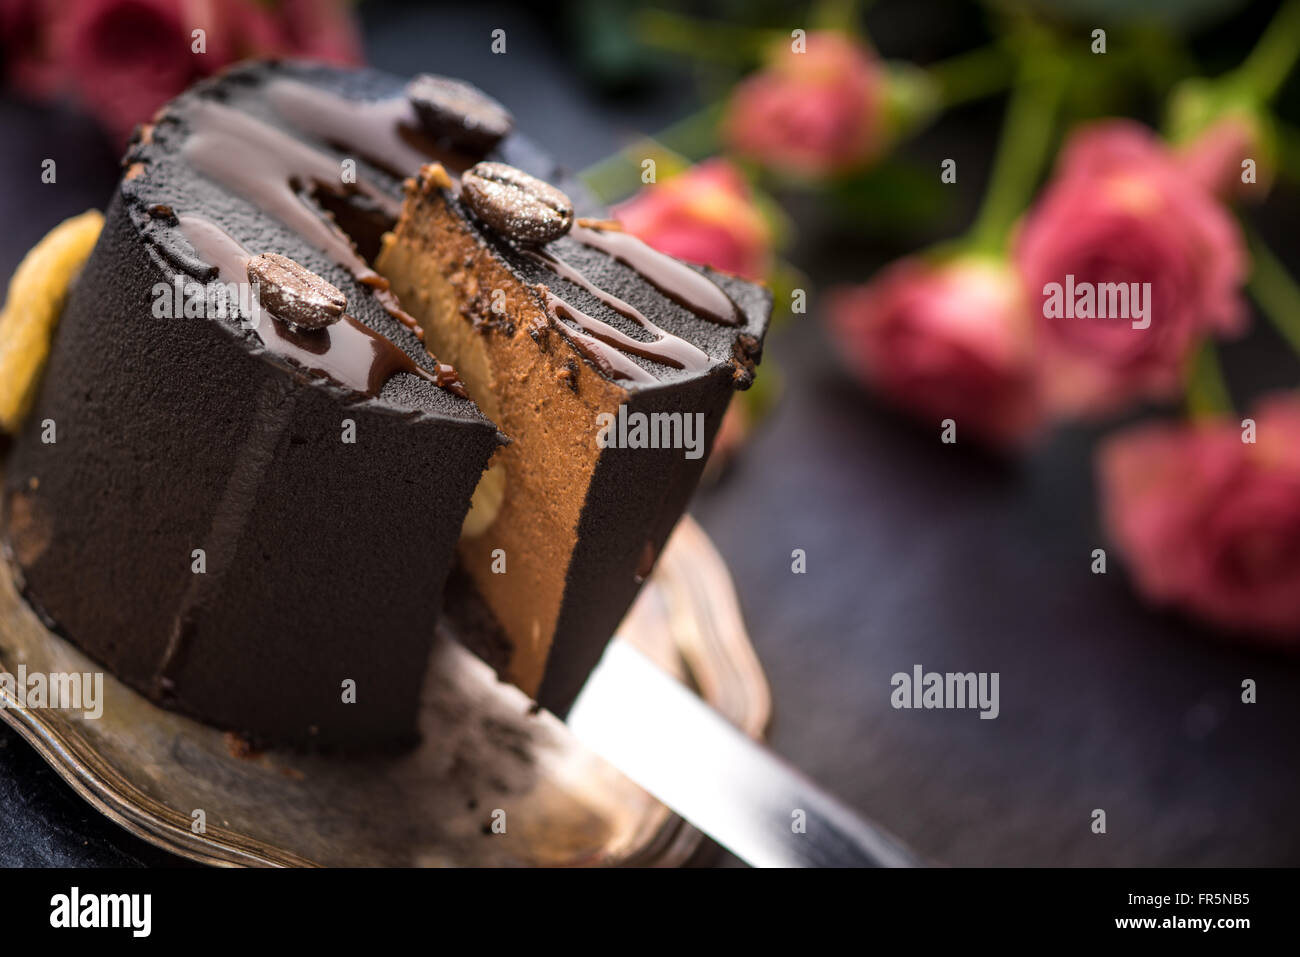 Coffee mousse and a bouquet of roses on a blue table horizontal - Stock Image